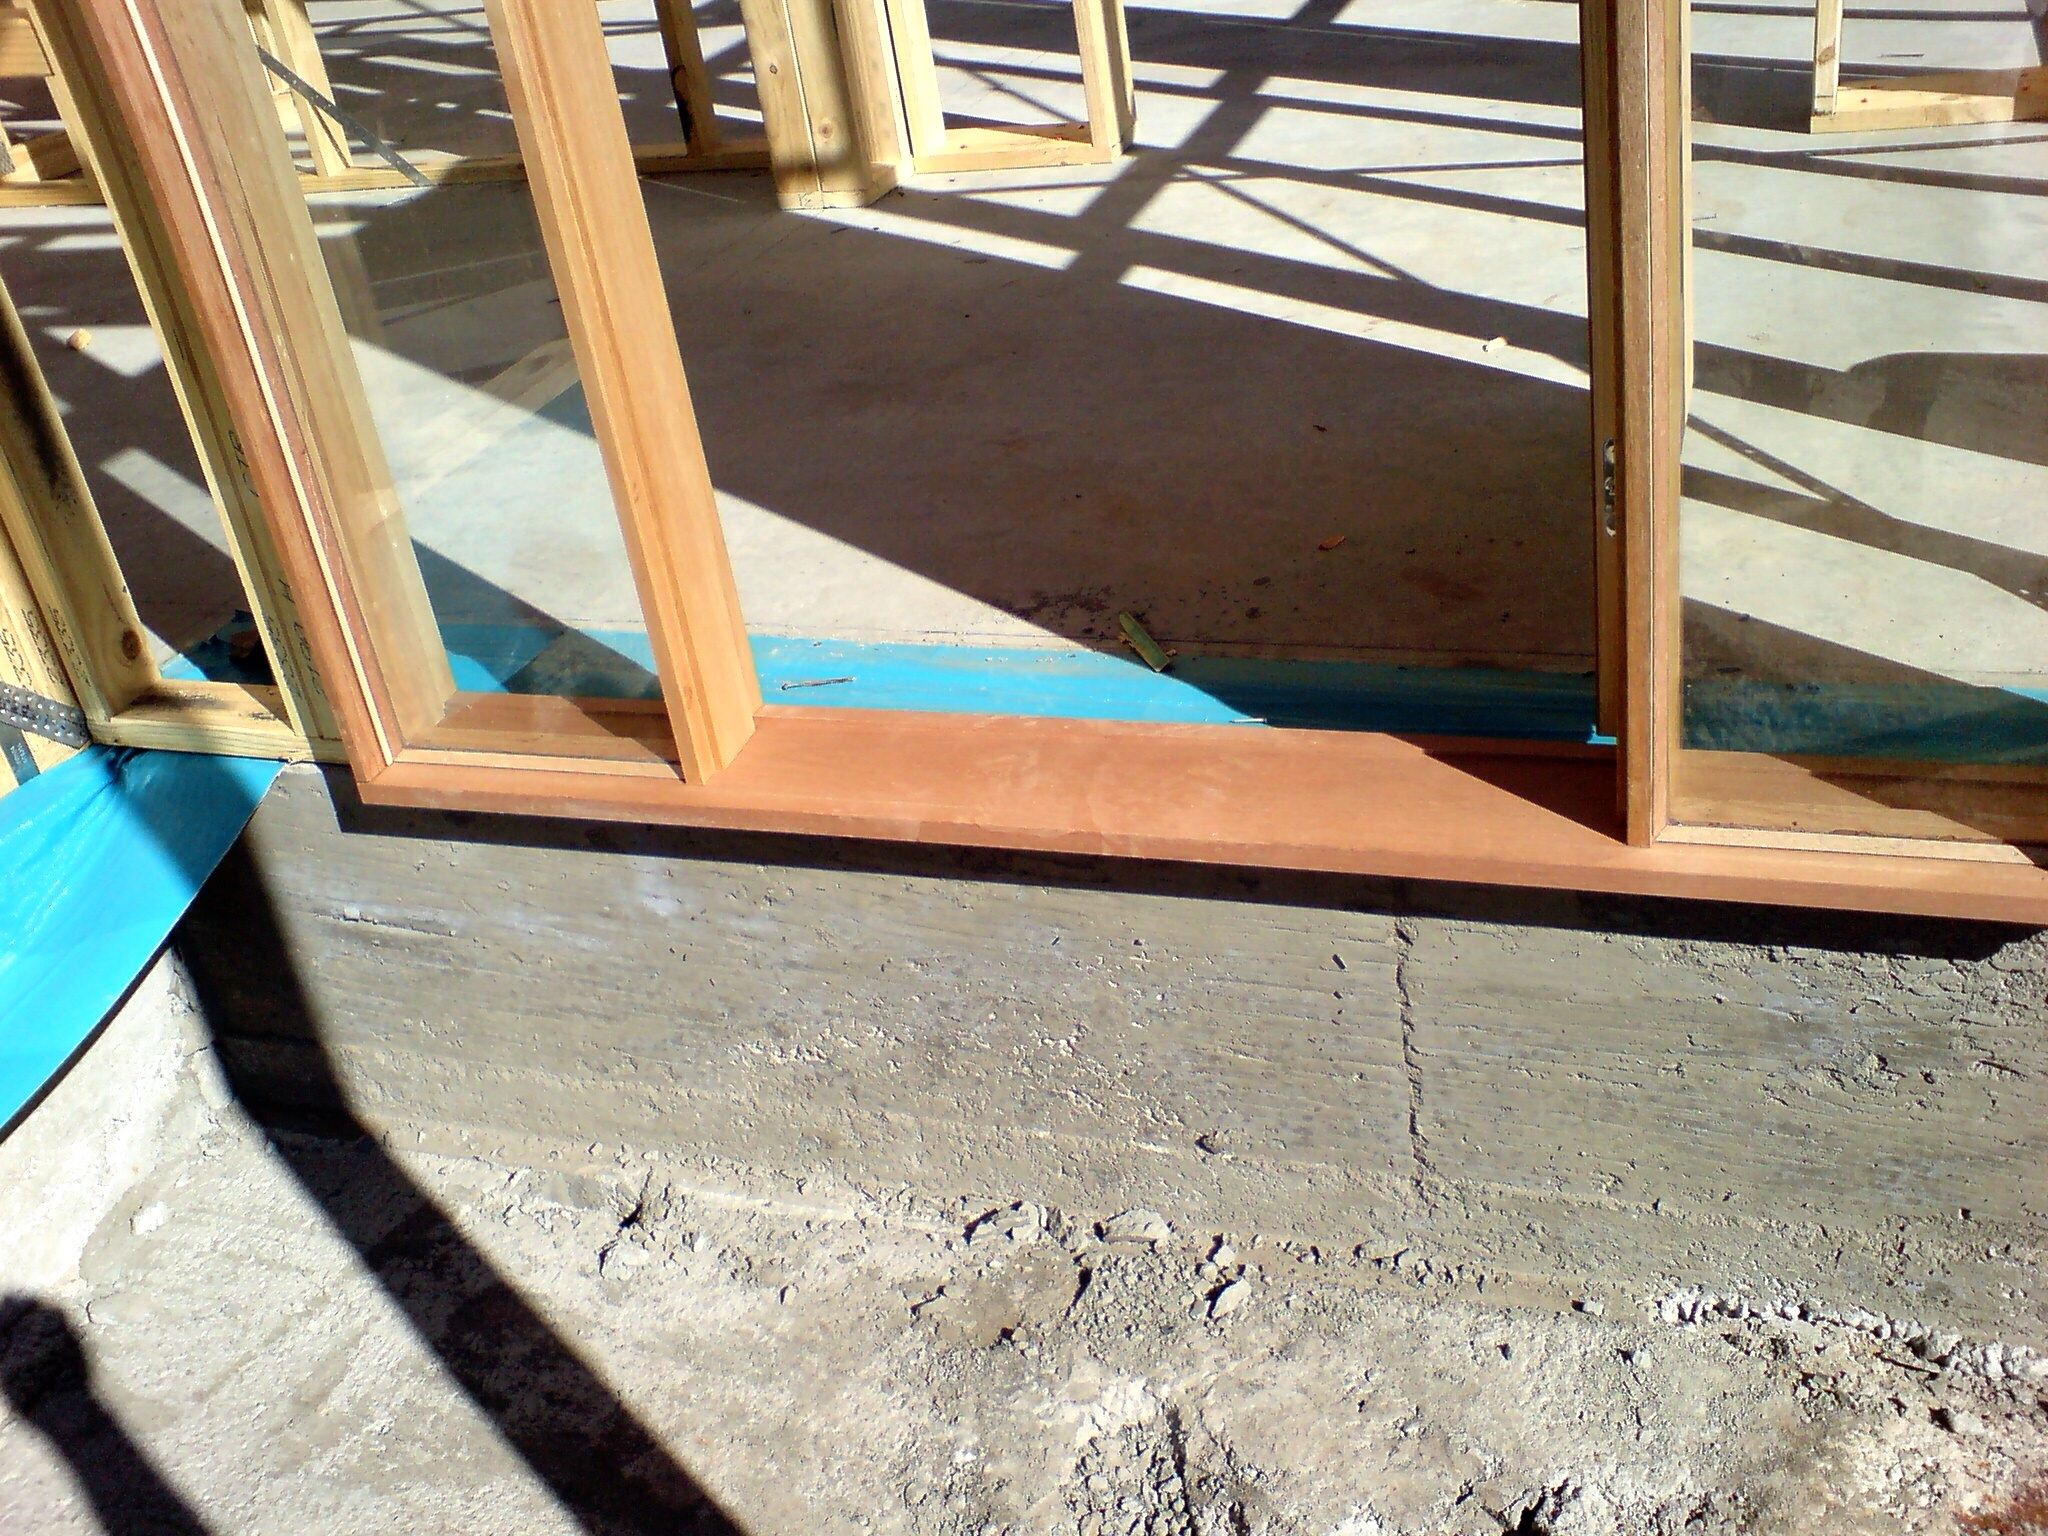 This barrier does not protrude below the doorway & frame. Remedial work would have to be done to correct this.